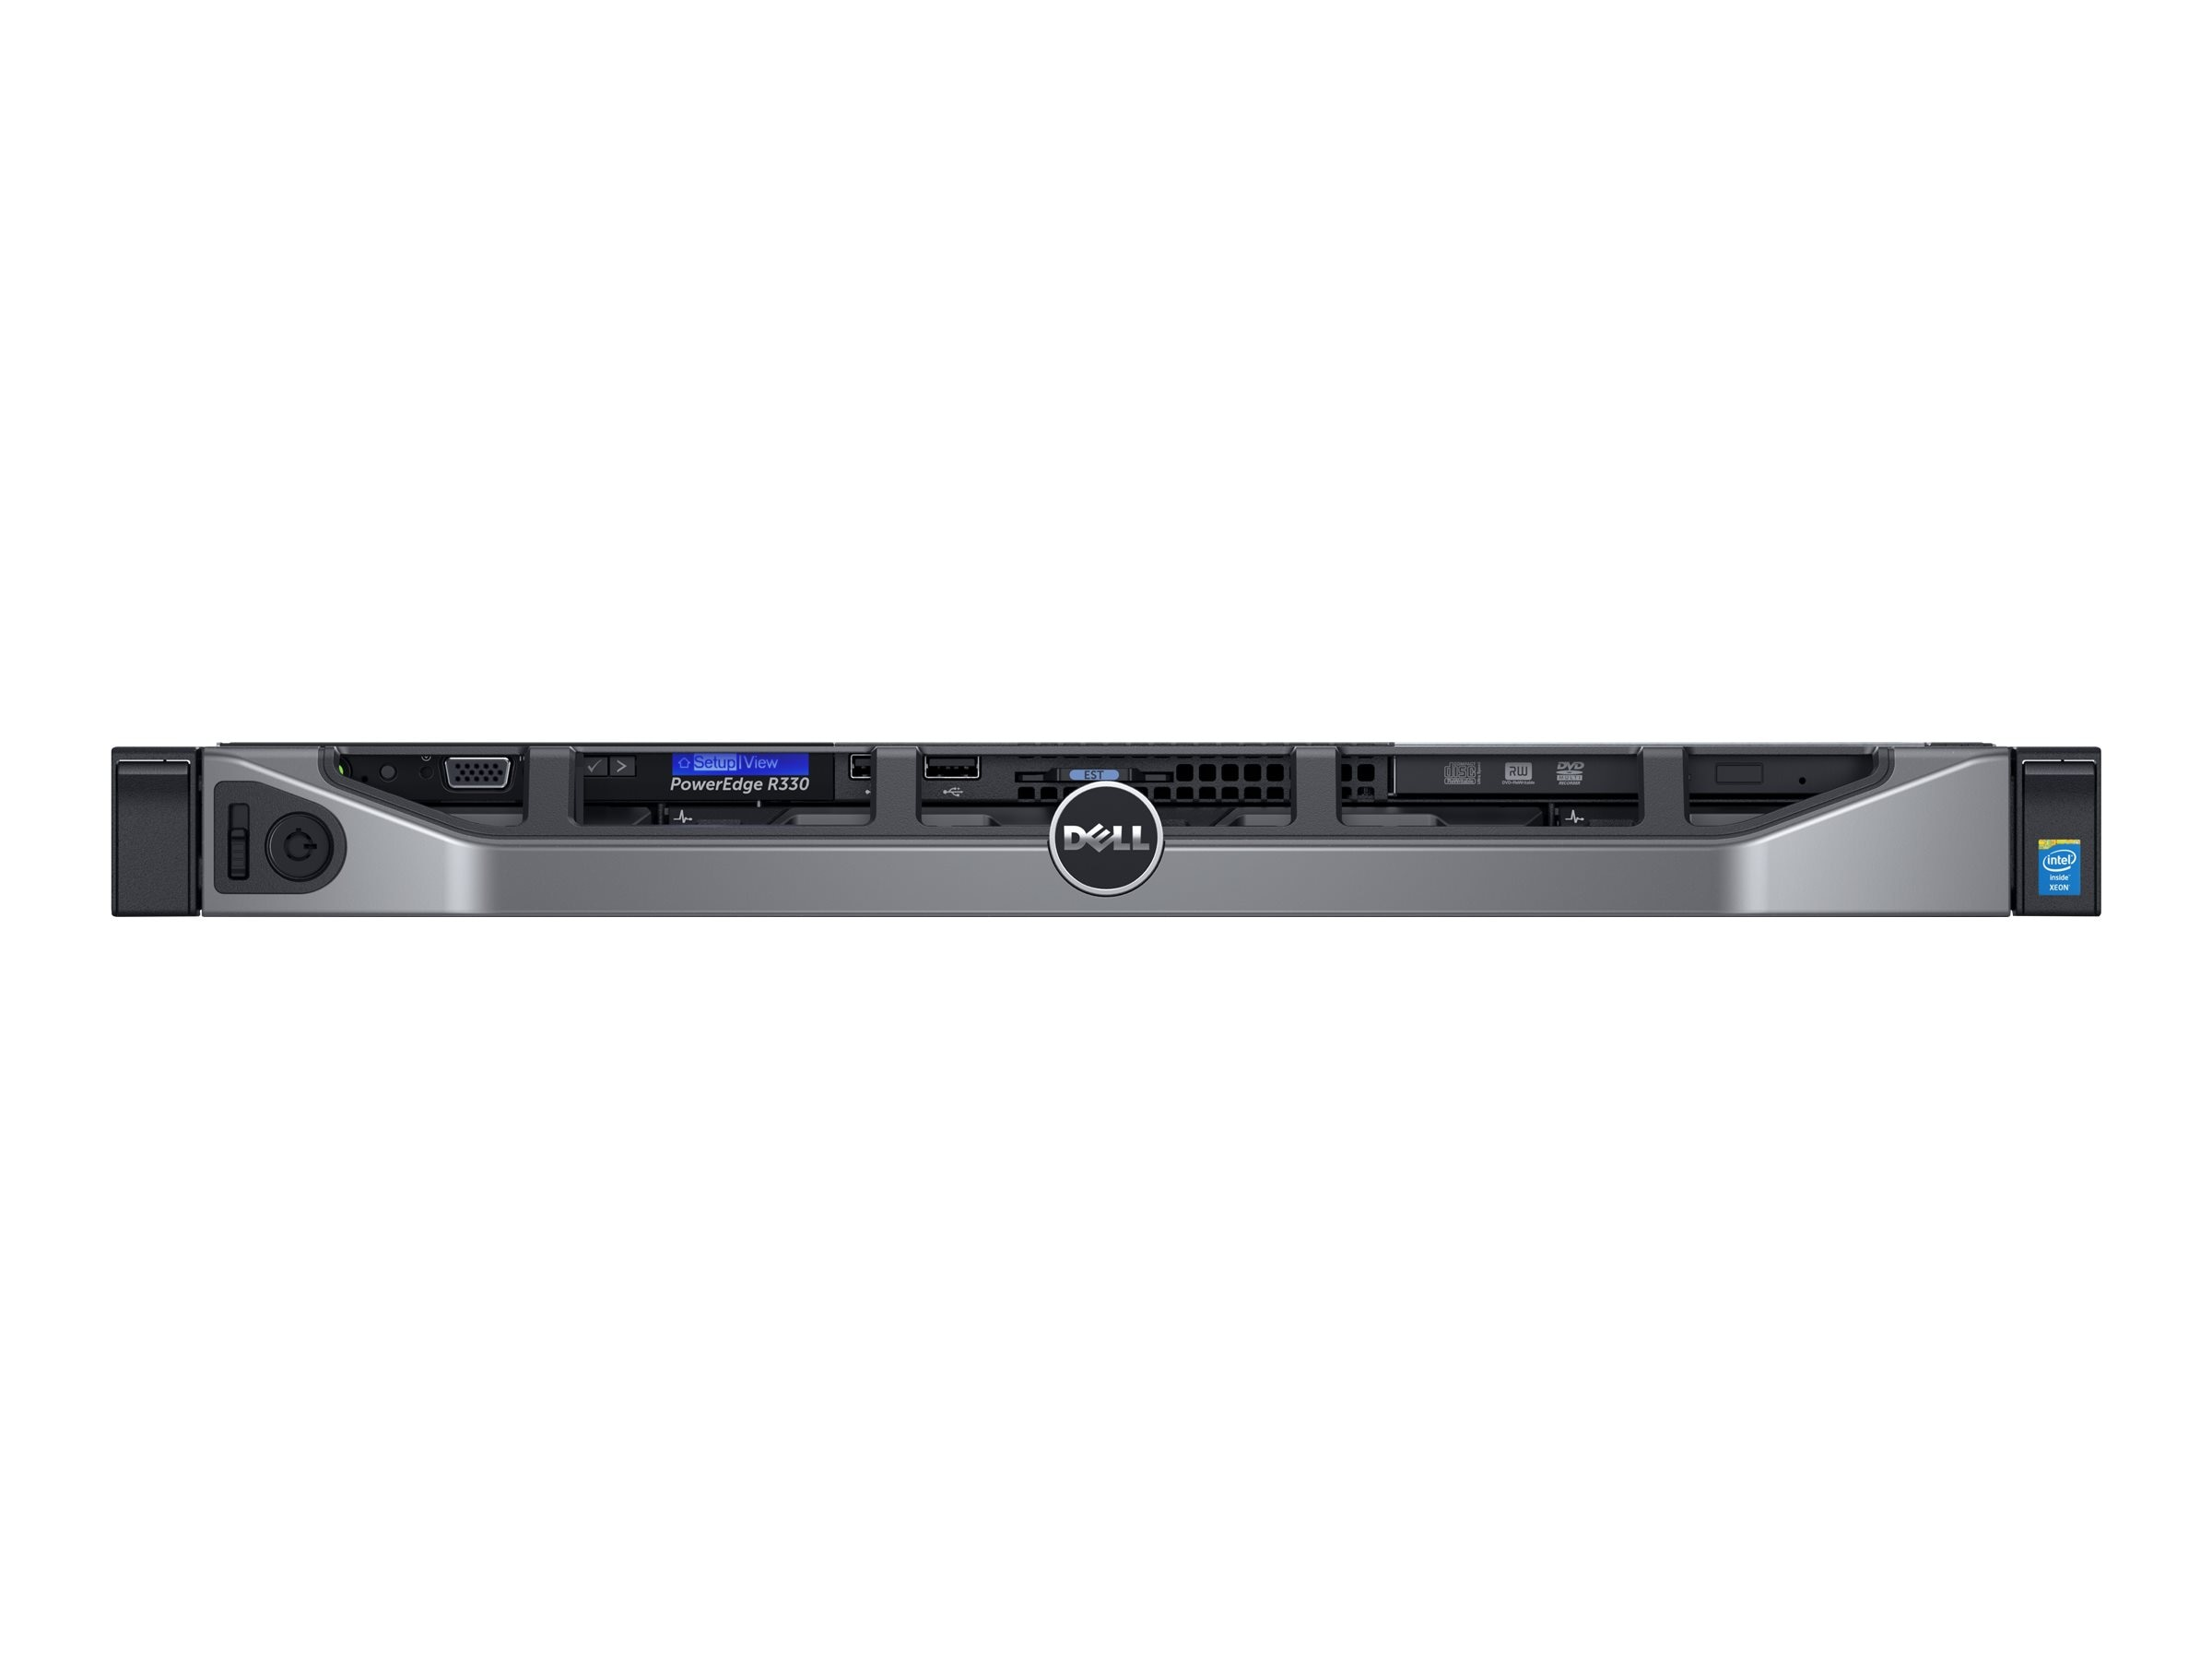 Dell PowerEdge R330 Intel 3GHz Xeon, 463-7649